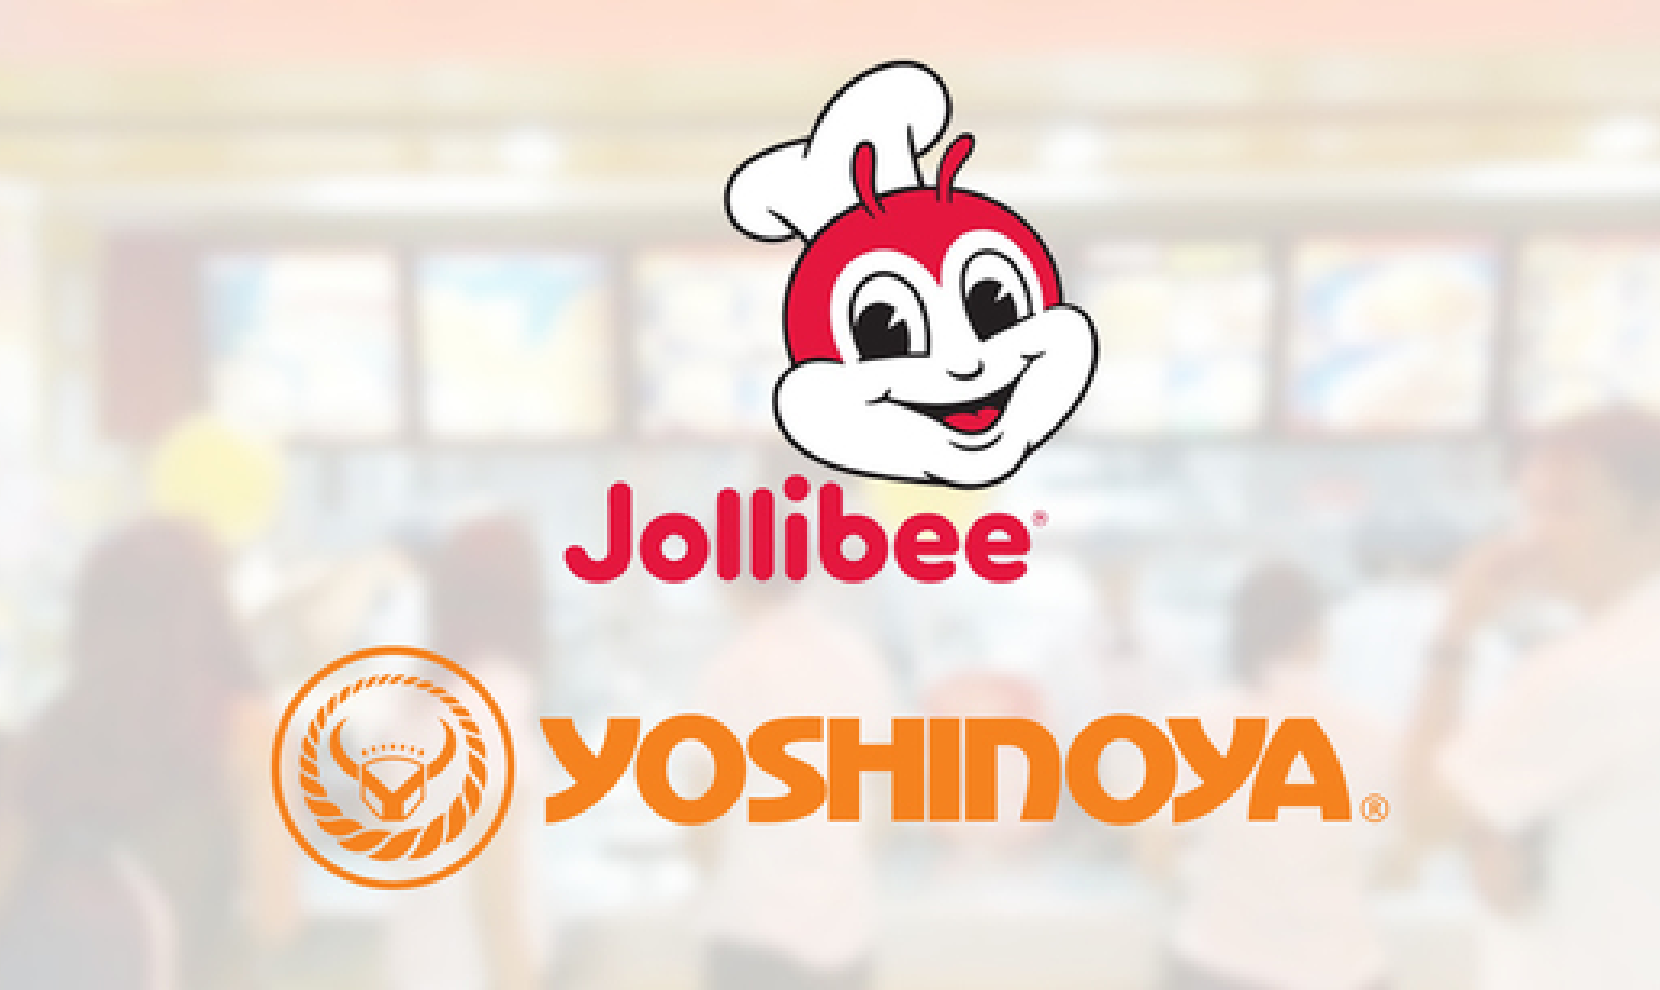 yoshinoya-aims-to-expand-by-establishing-a-joint-venture-with-jollibee-the-largest-restaurant-operator-in-the-philippines